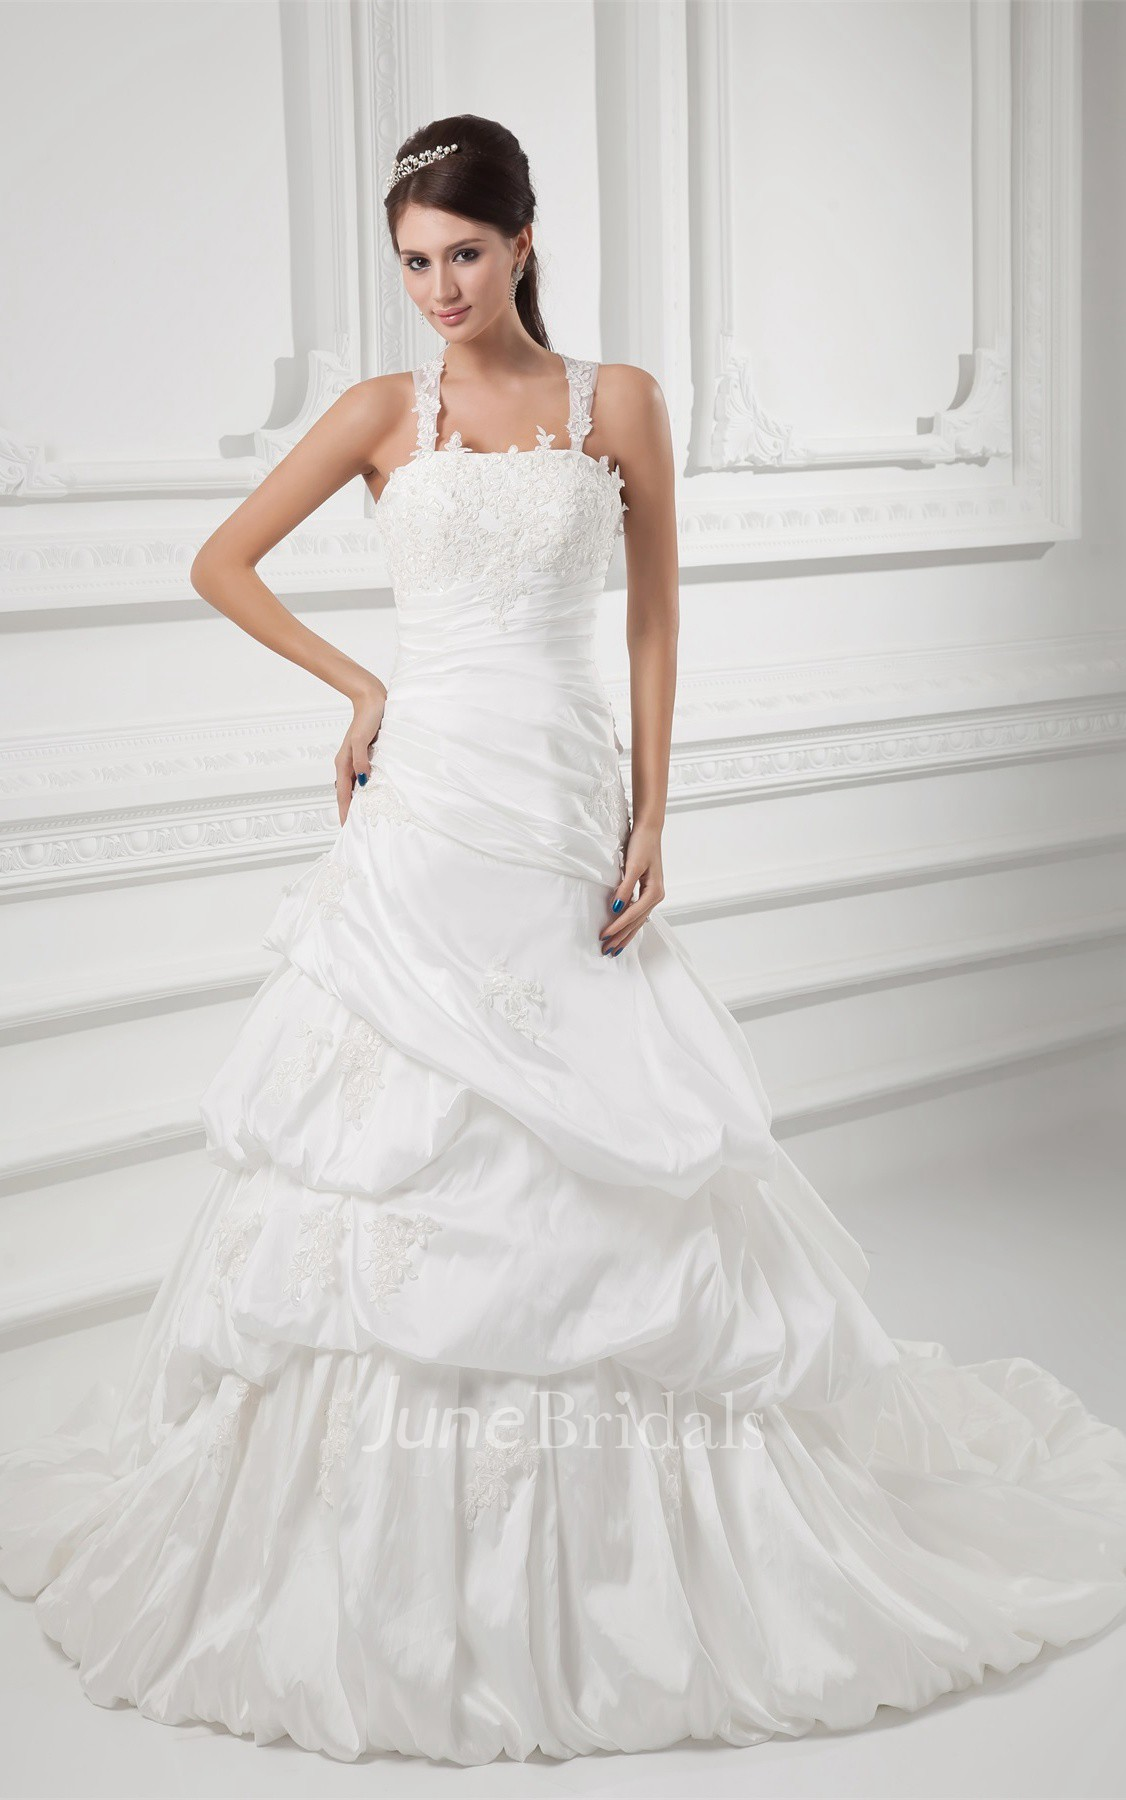 Strapped A Line Pick Up Gown With Appliques June Bridals